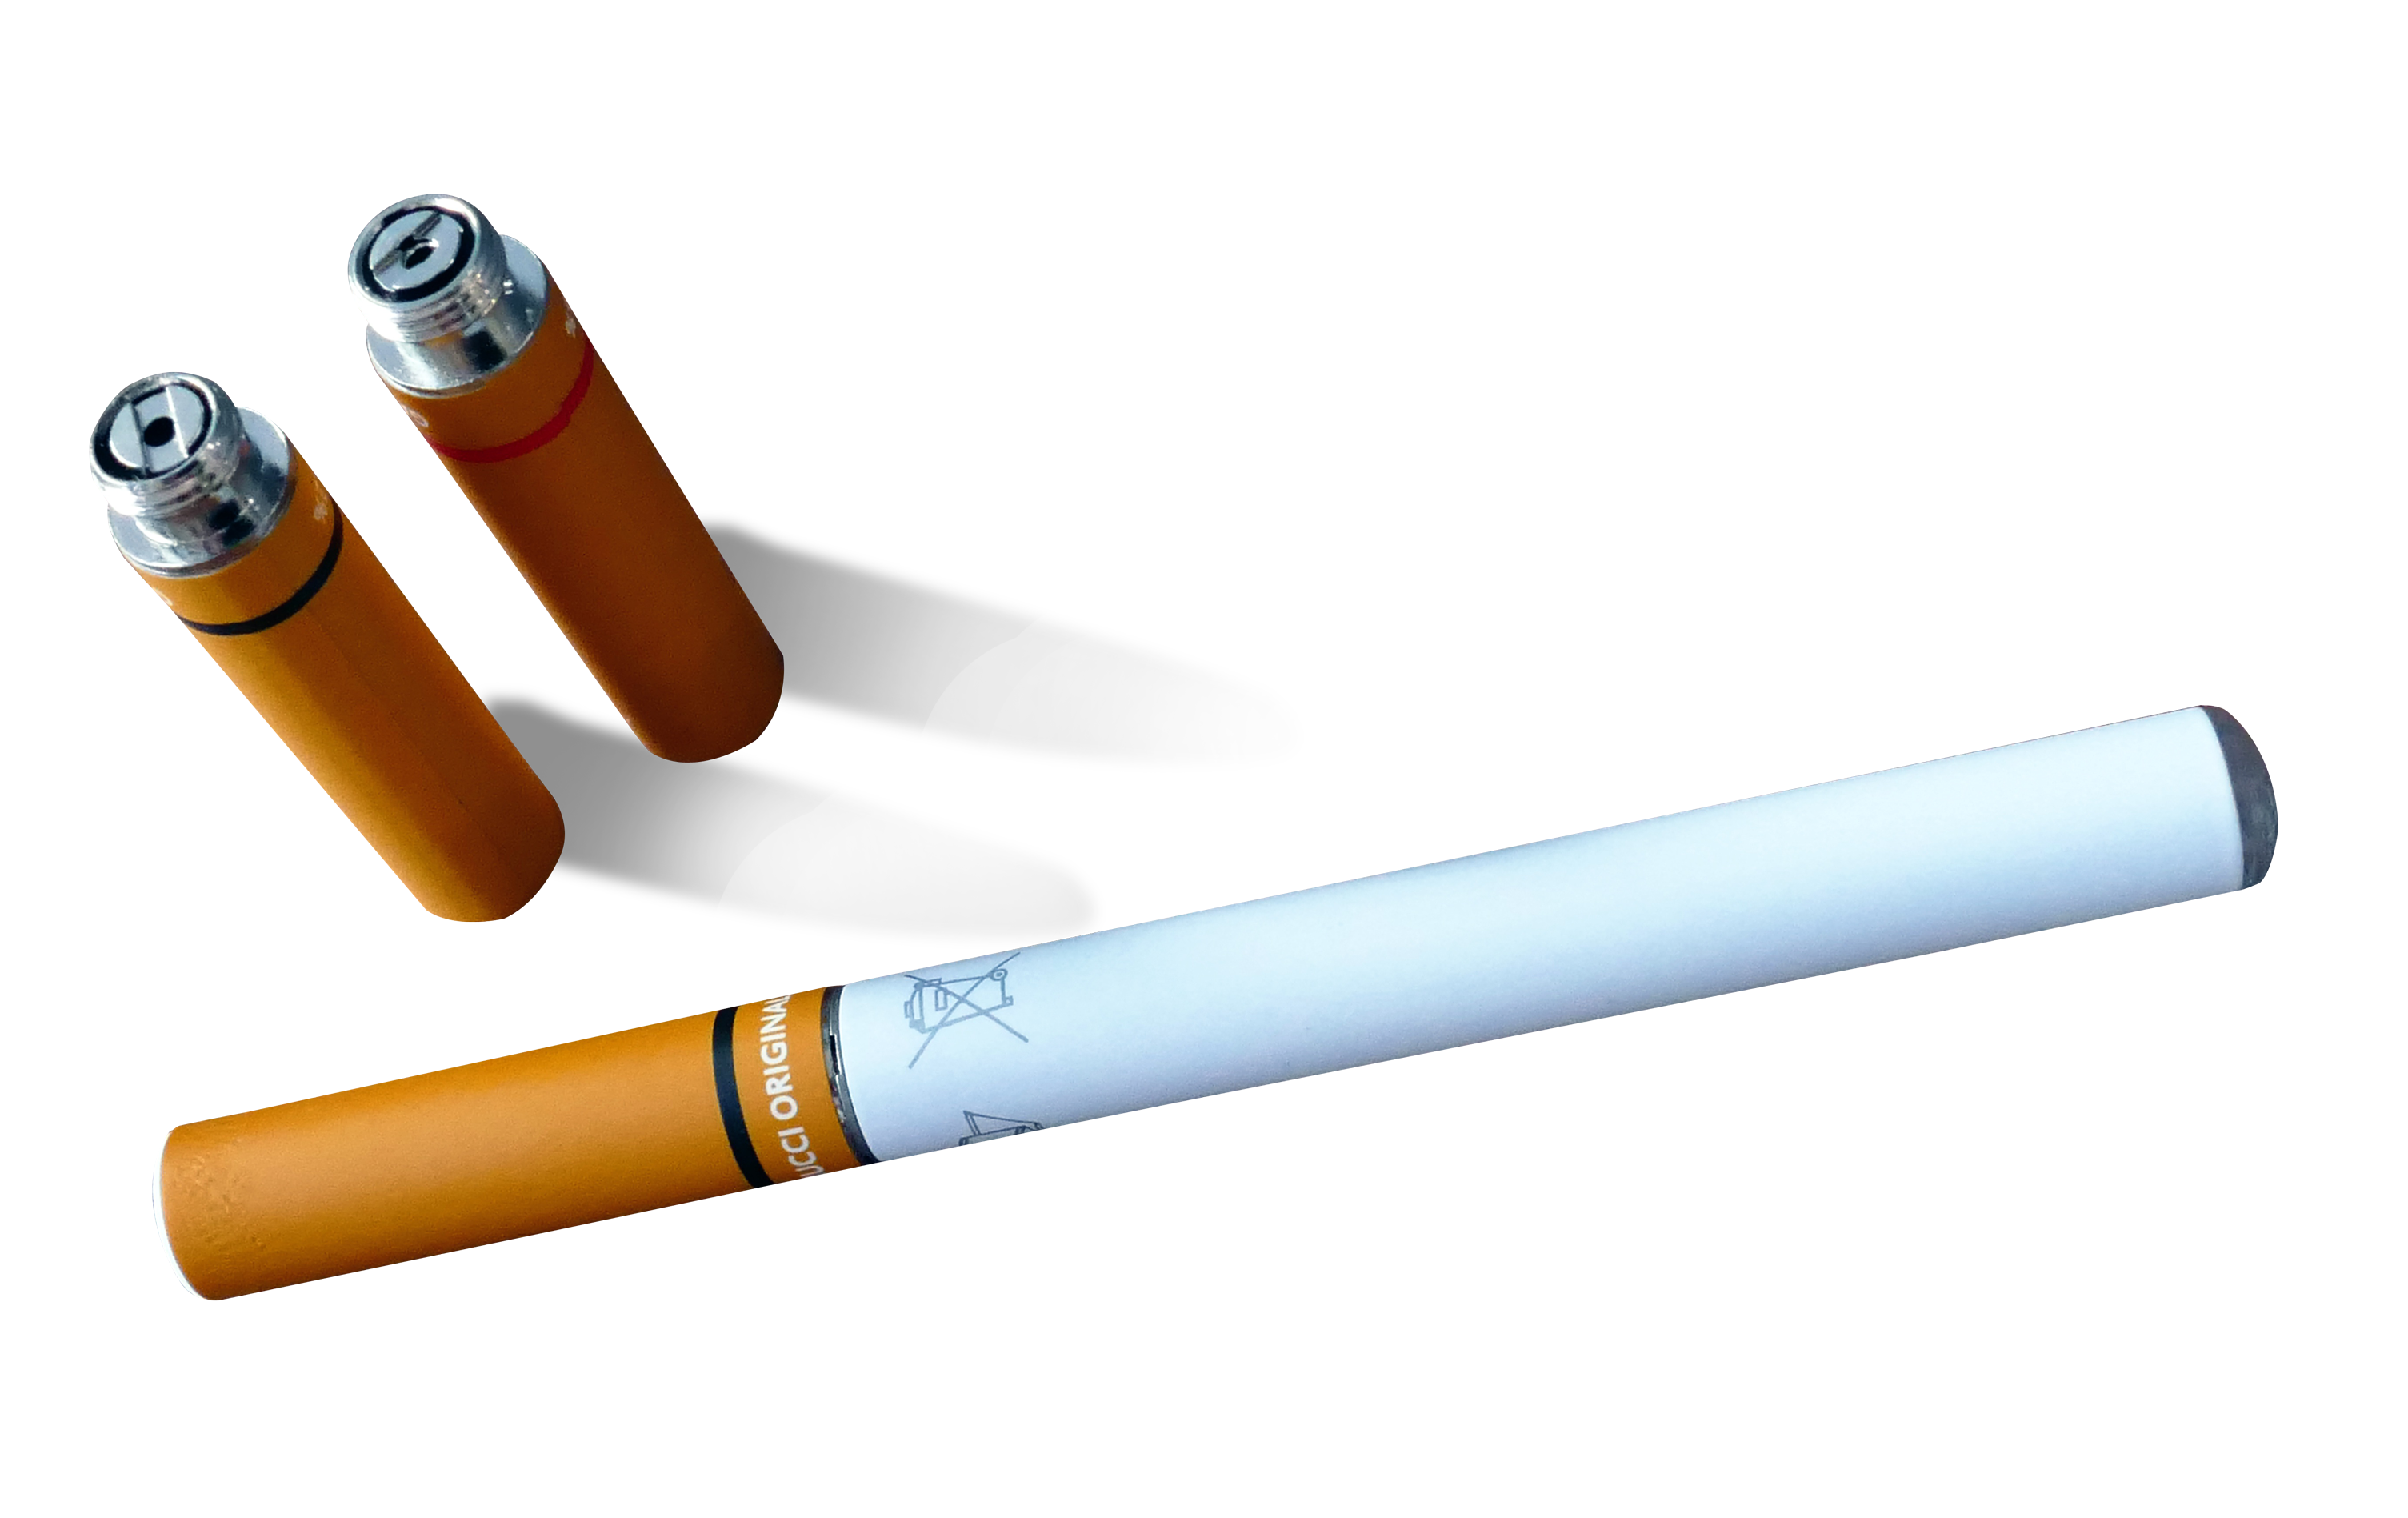 Cigar clipart transparent background. Electronic cigarette png image